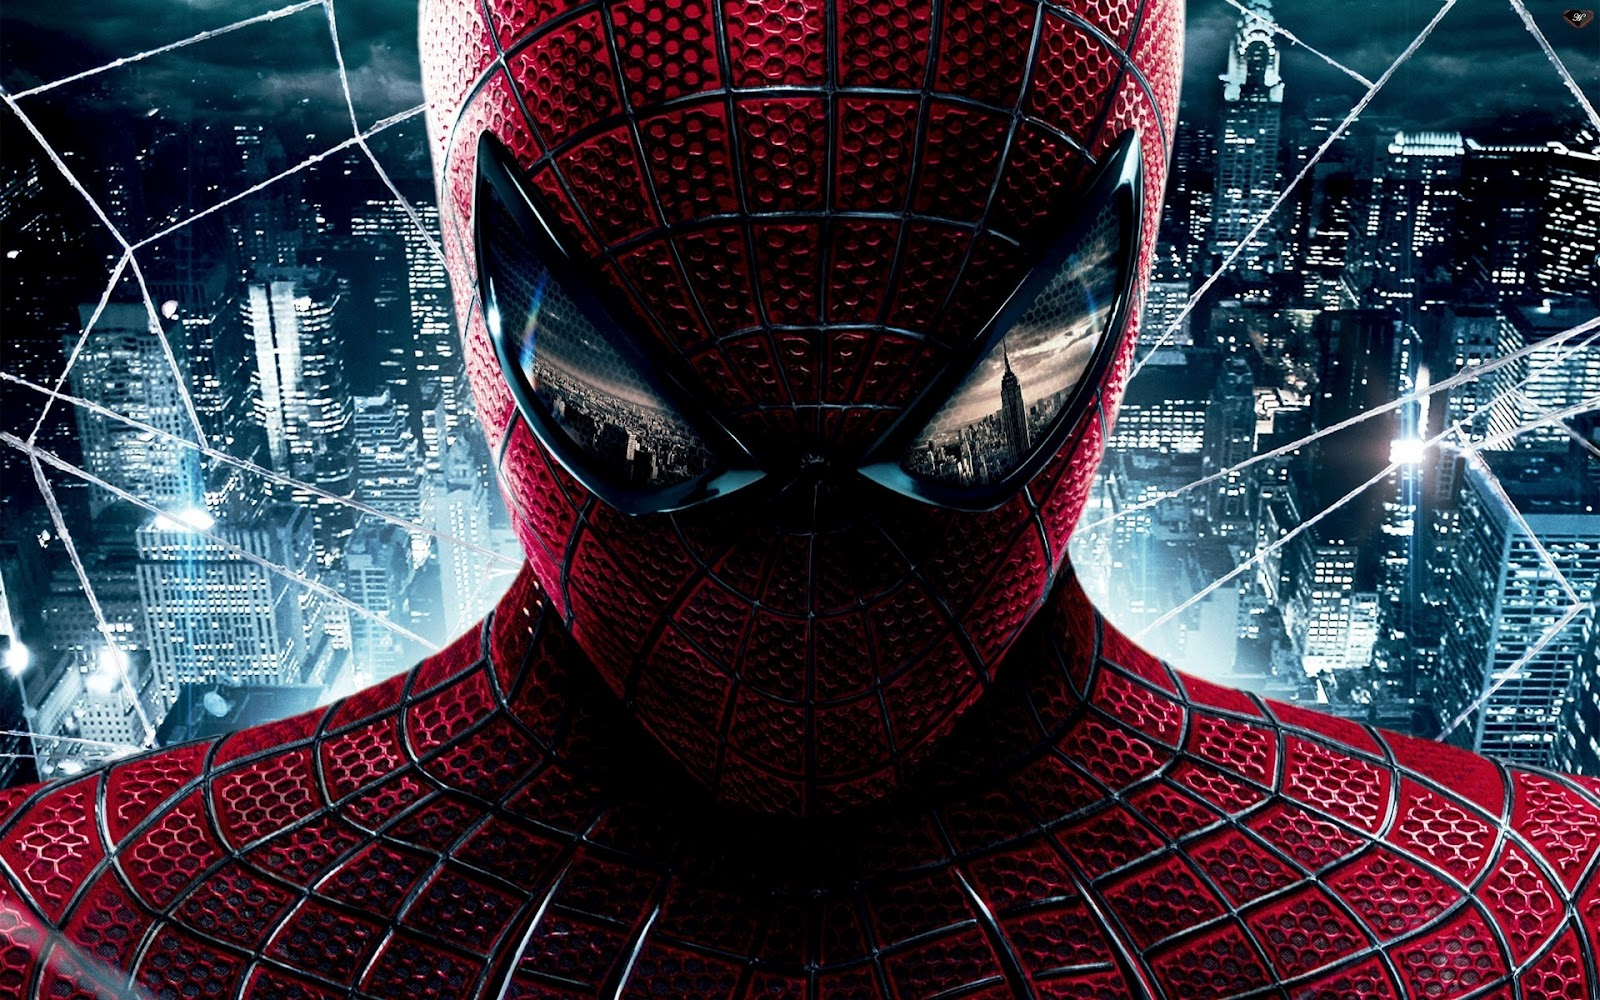 http://4.bp.blogspot.com/-nJ5CS1VvPP4/T6rtiQp1MgI/AAAAAAAAcgQ/psUkoHQ5quo/s1600/spider-man_wallpapers-hd-fondos.jpg